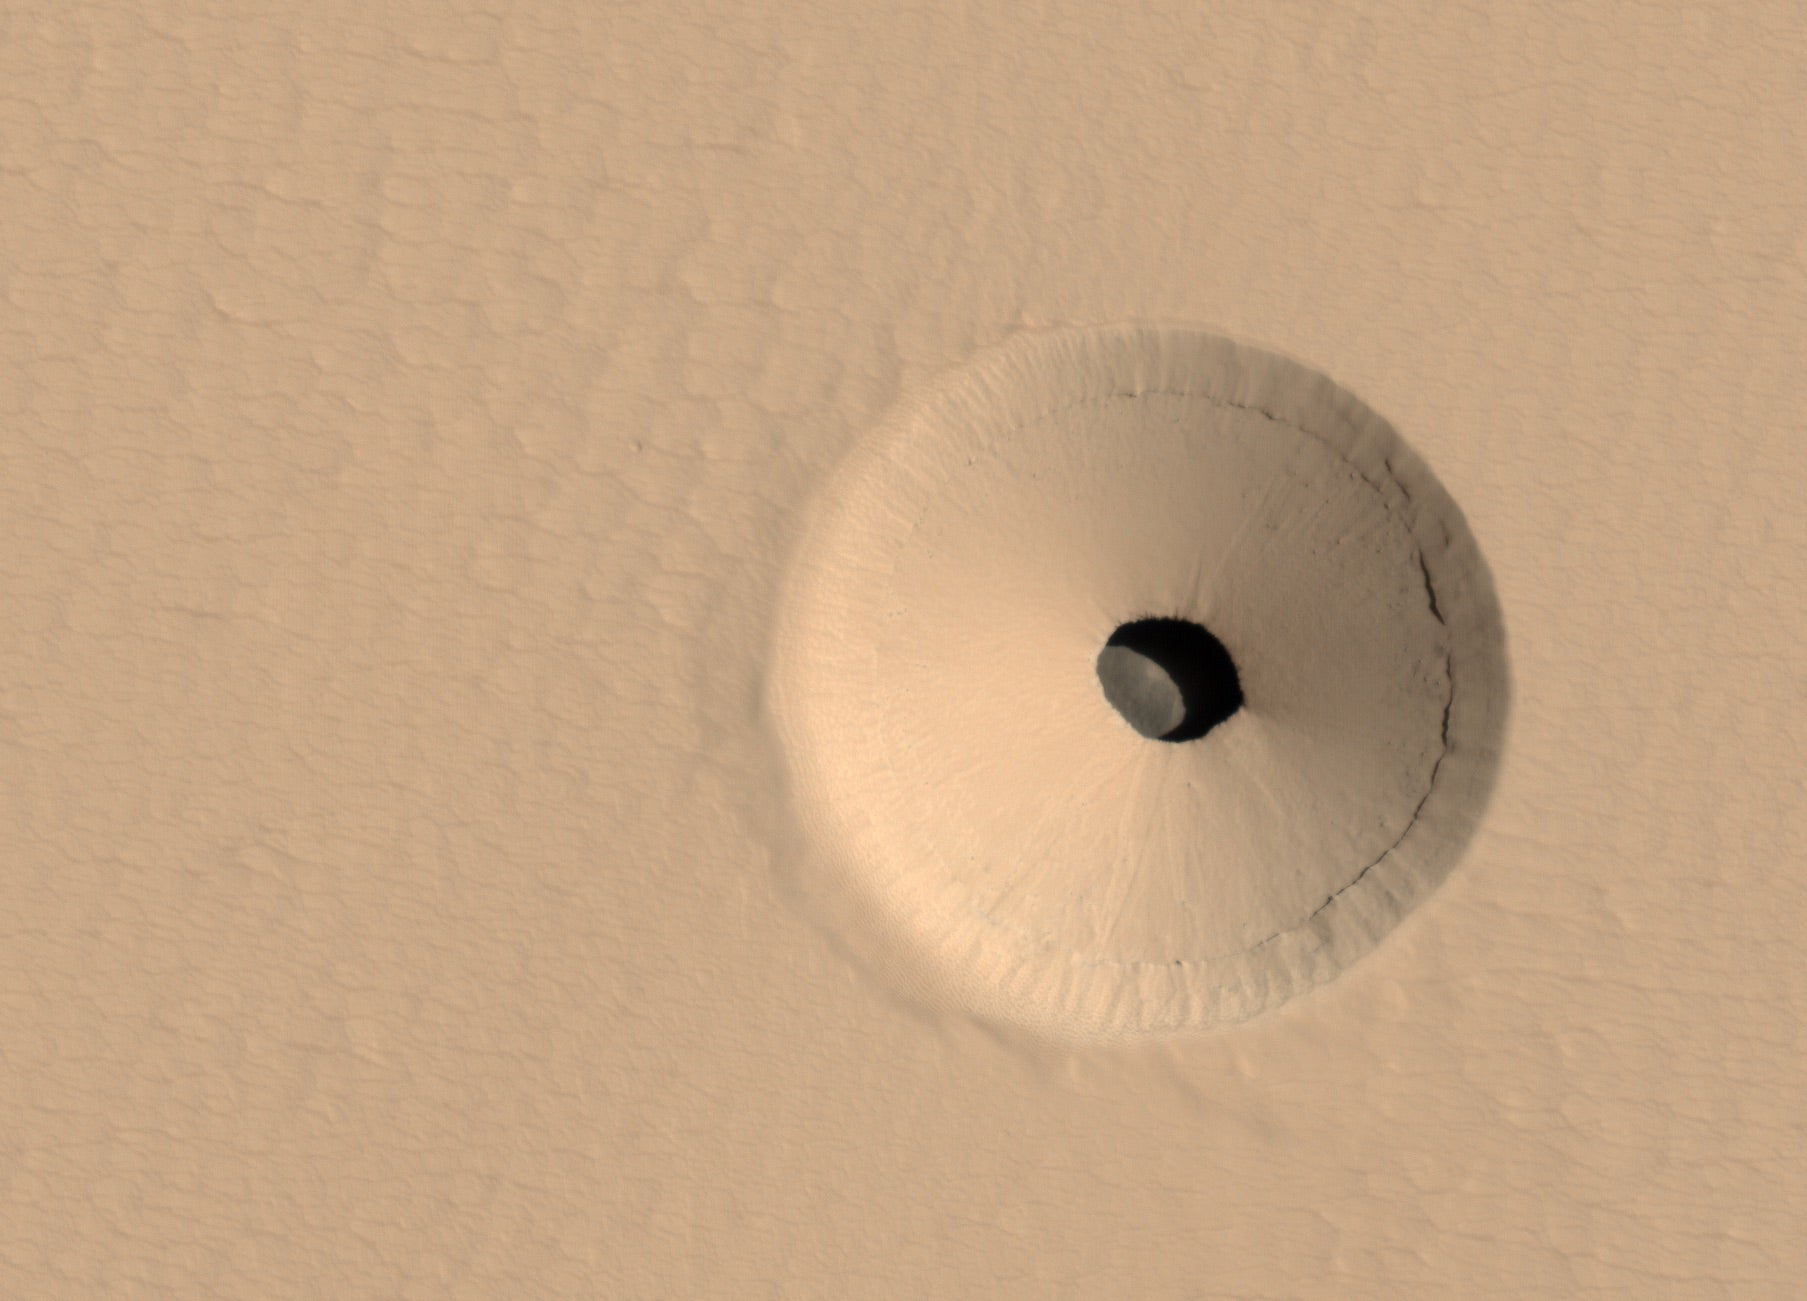 The 1,000 Caves of Mars